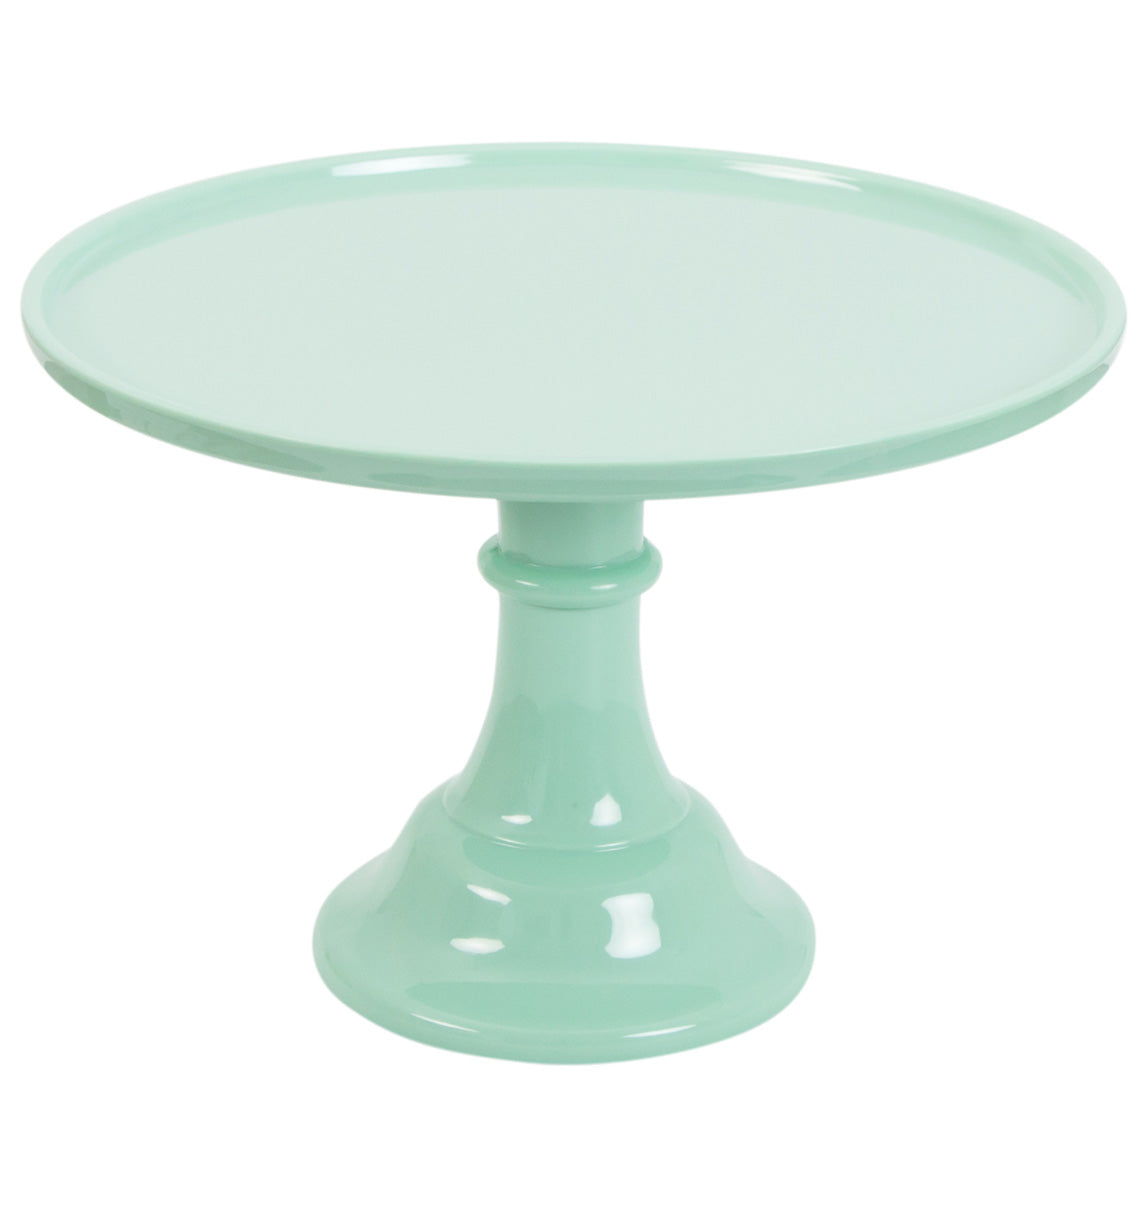 Classic Large Cake Stand - Mint